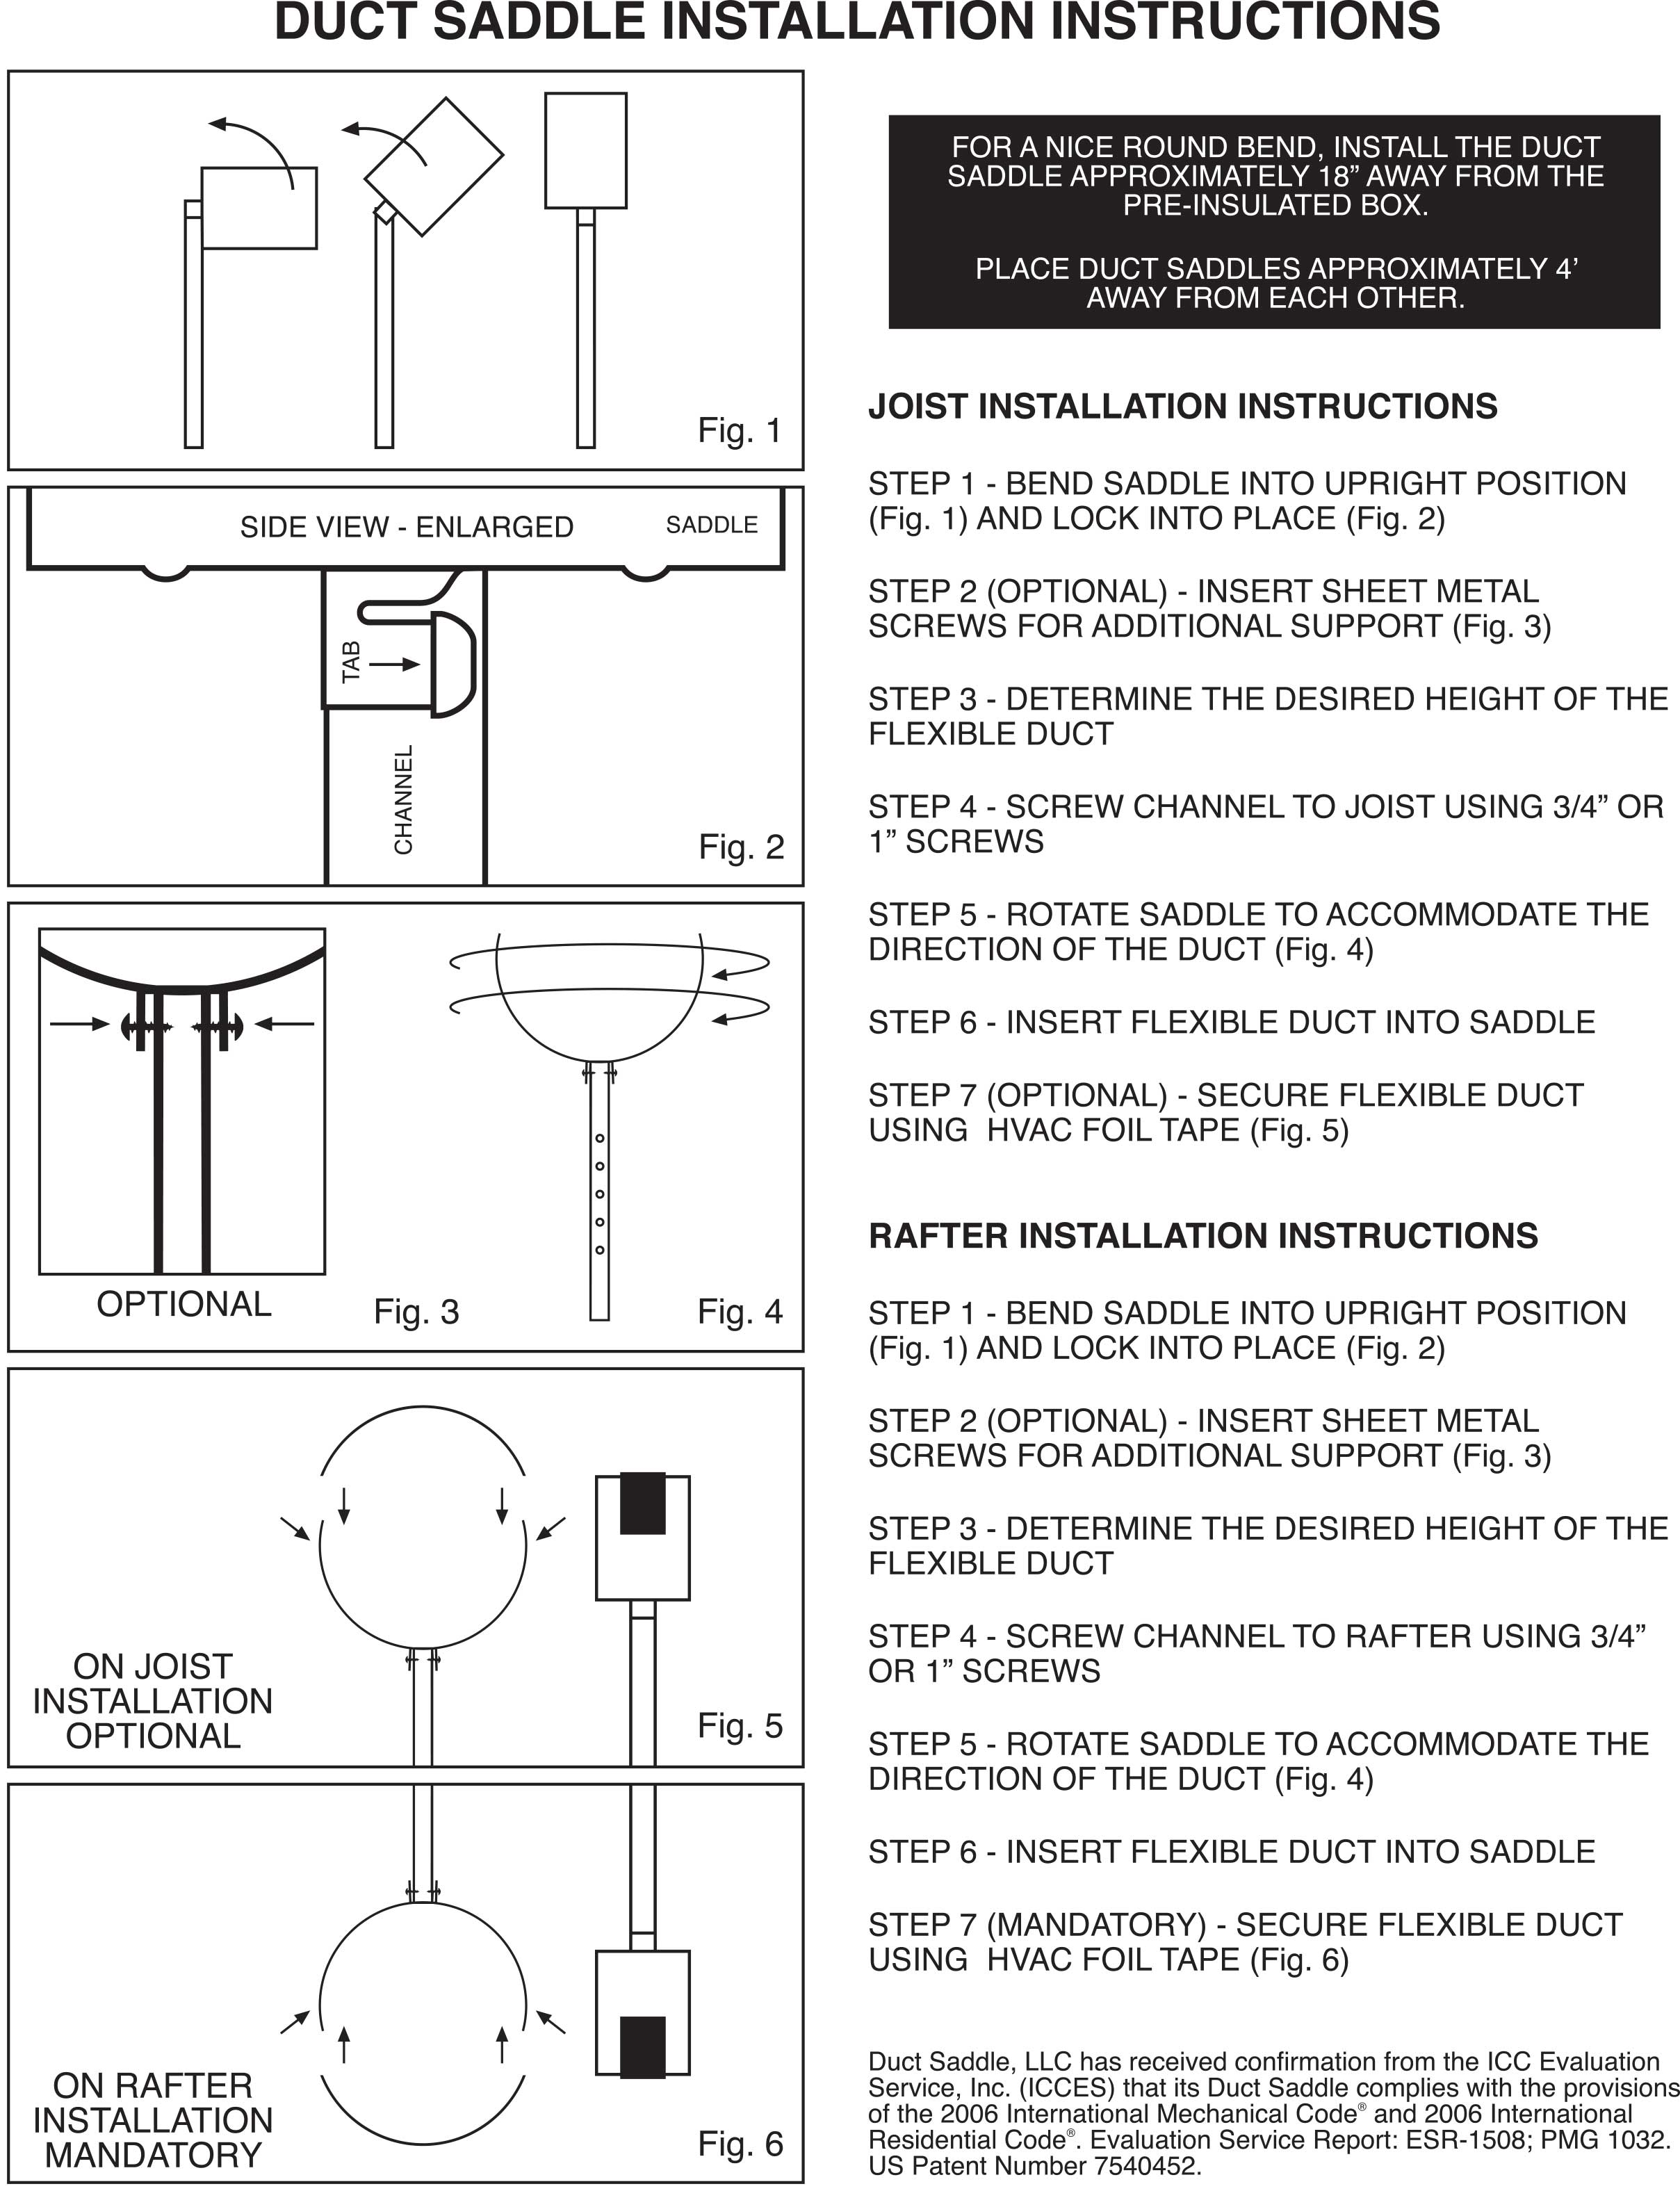 Duct Saddle joist and rafter installation instructions